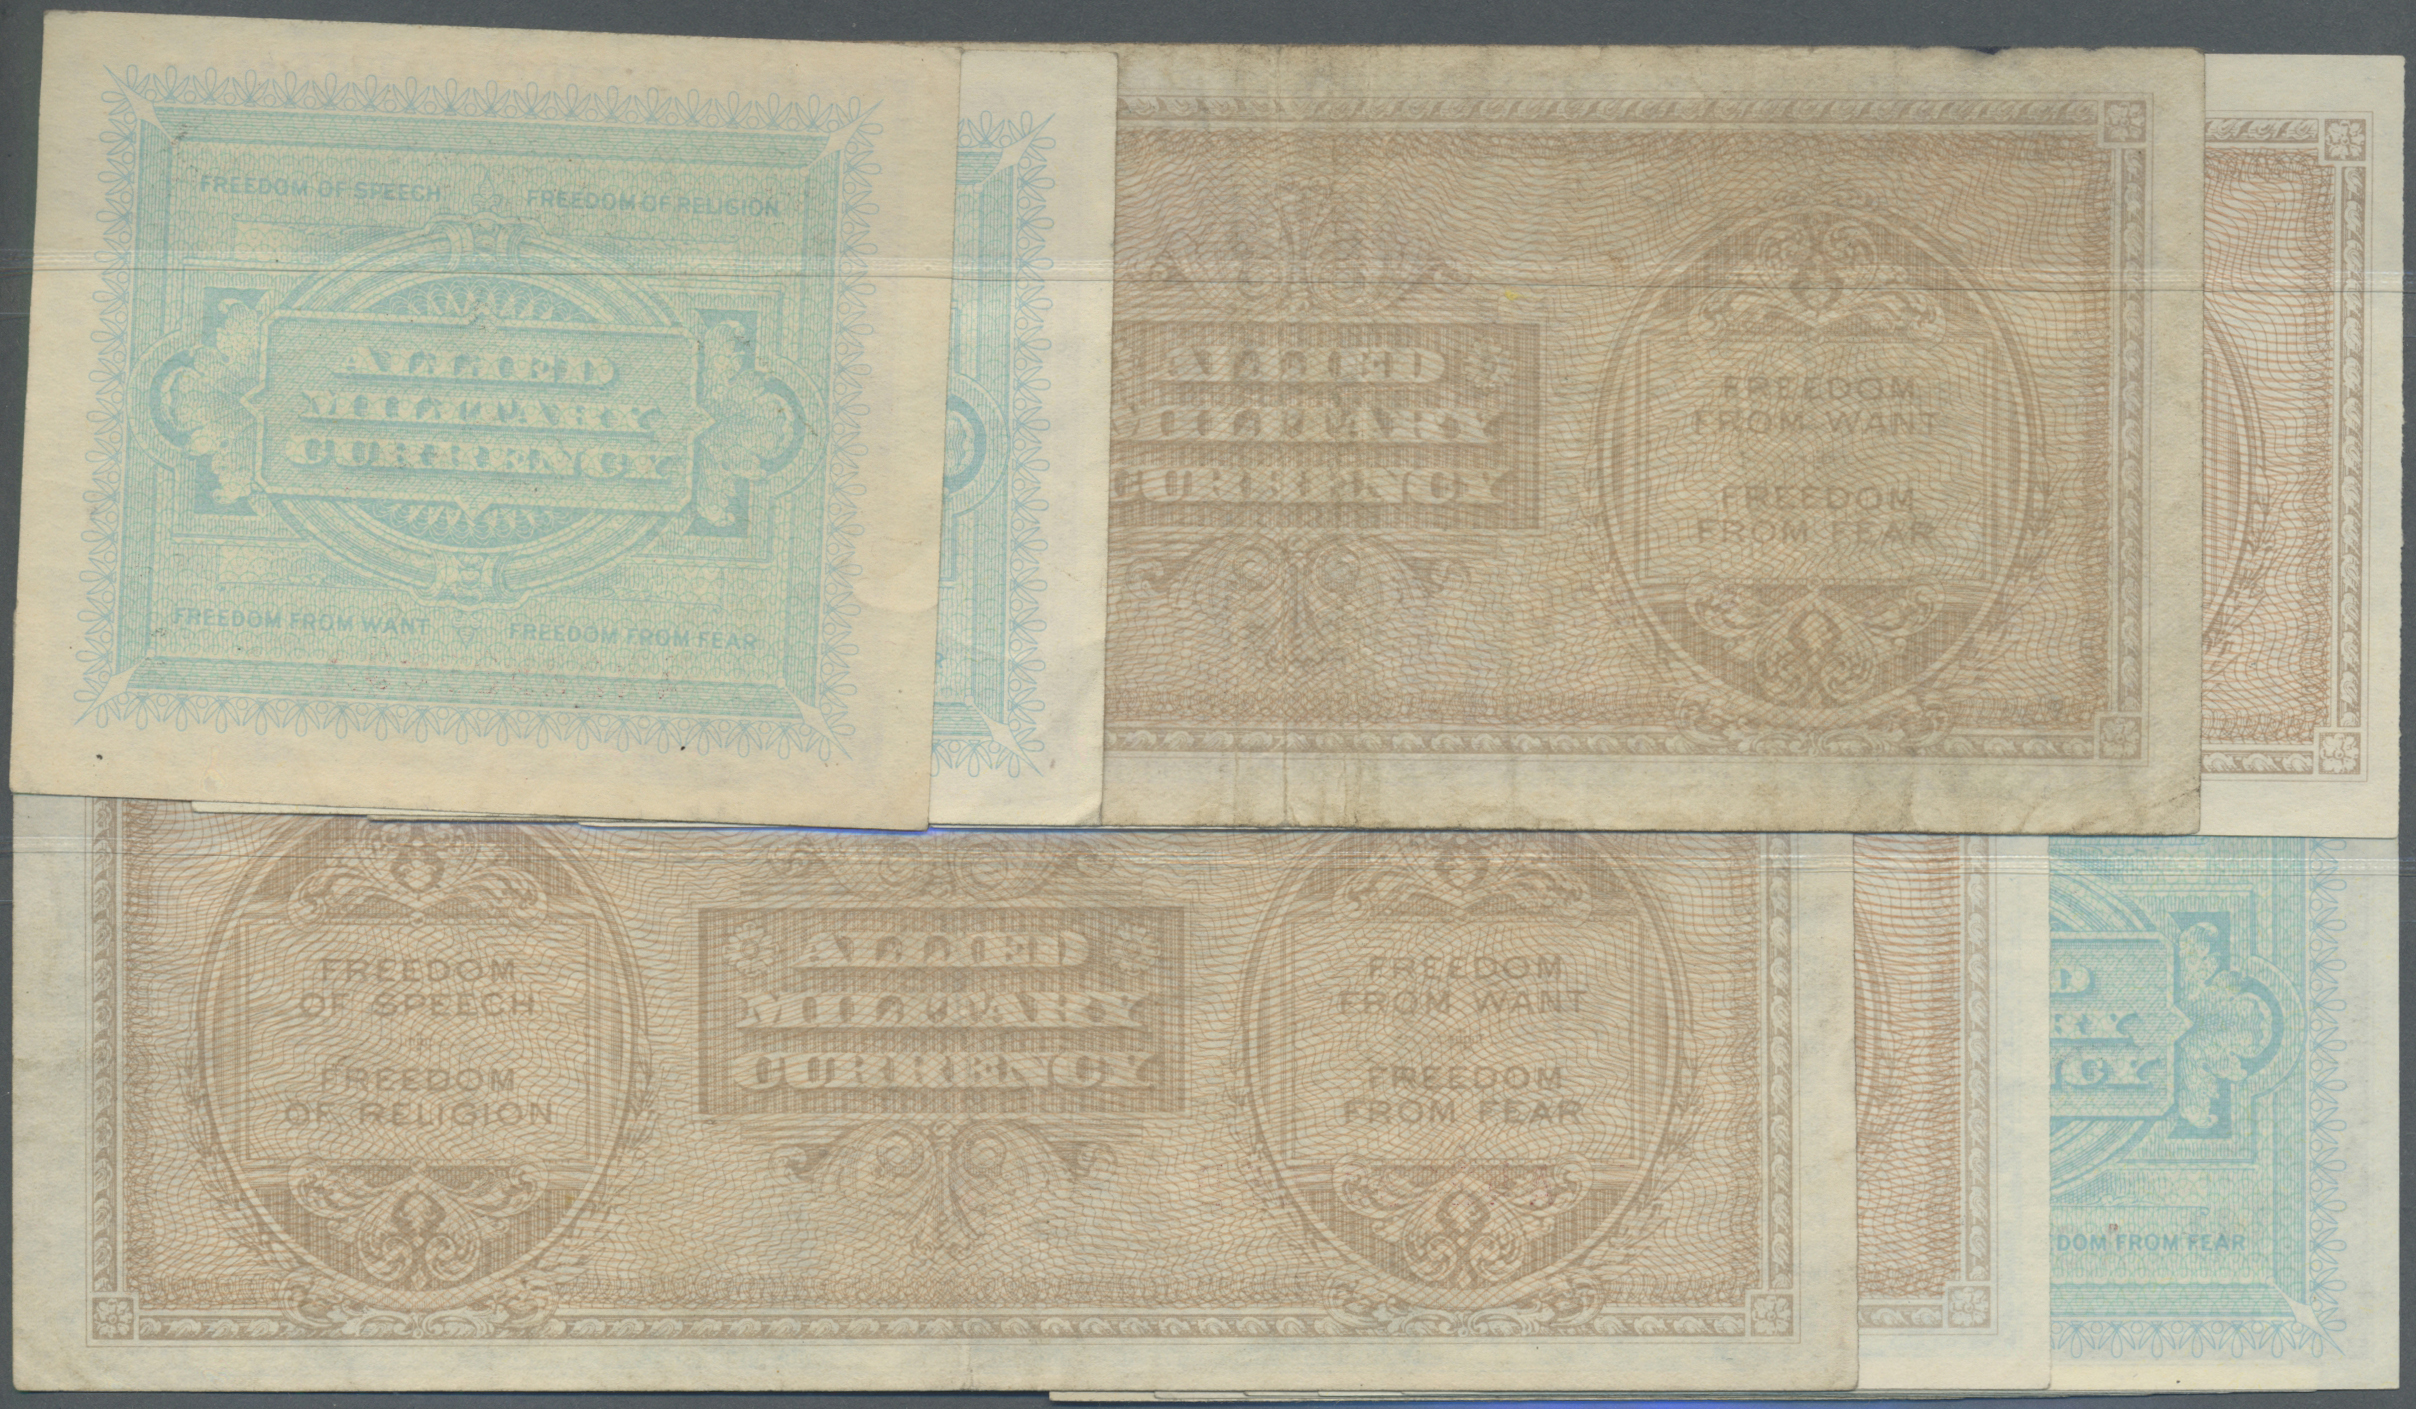 Lot 00462 - Italy / Italien | Banknoten  -  Auktionshaus Christoph Gärtner GmbH & Co. KG Sale #48 The Banknotes